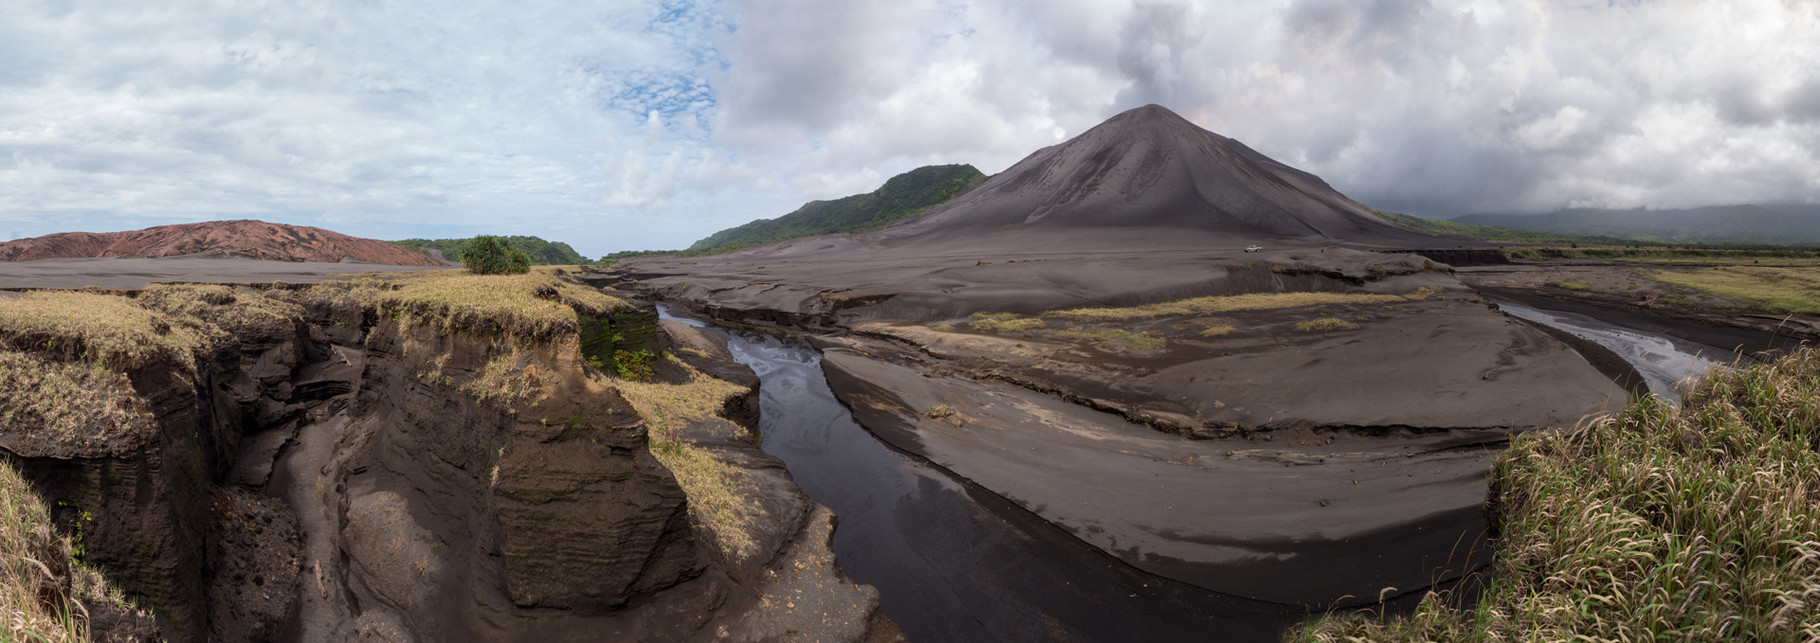 Eroded ash plain and smoking Yasur volcano in the background , Tanna island